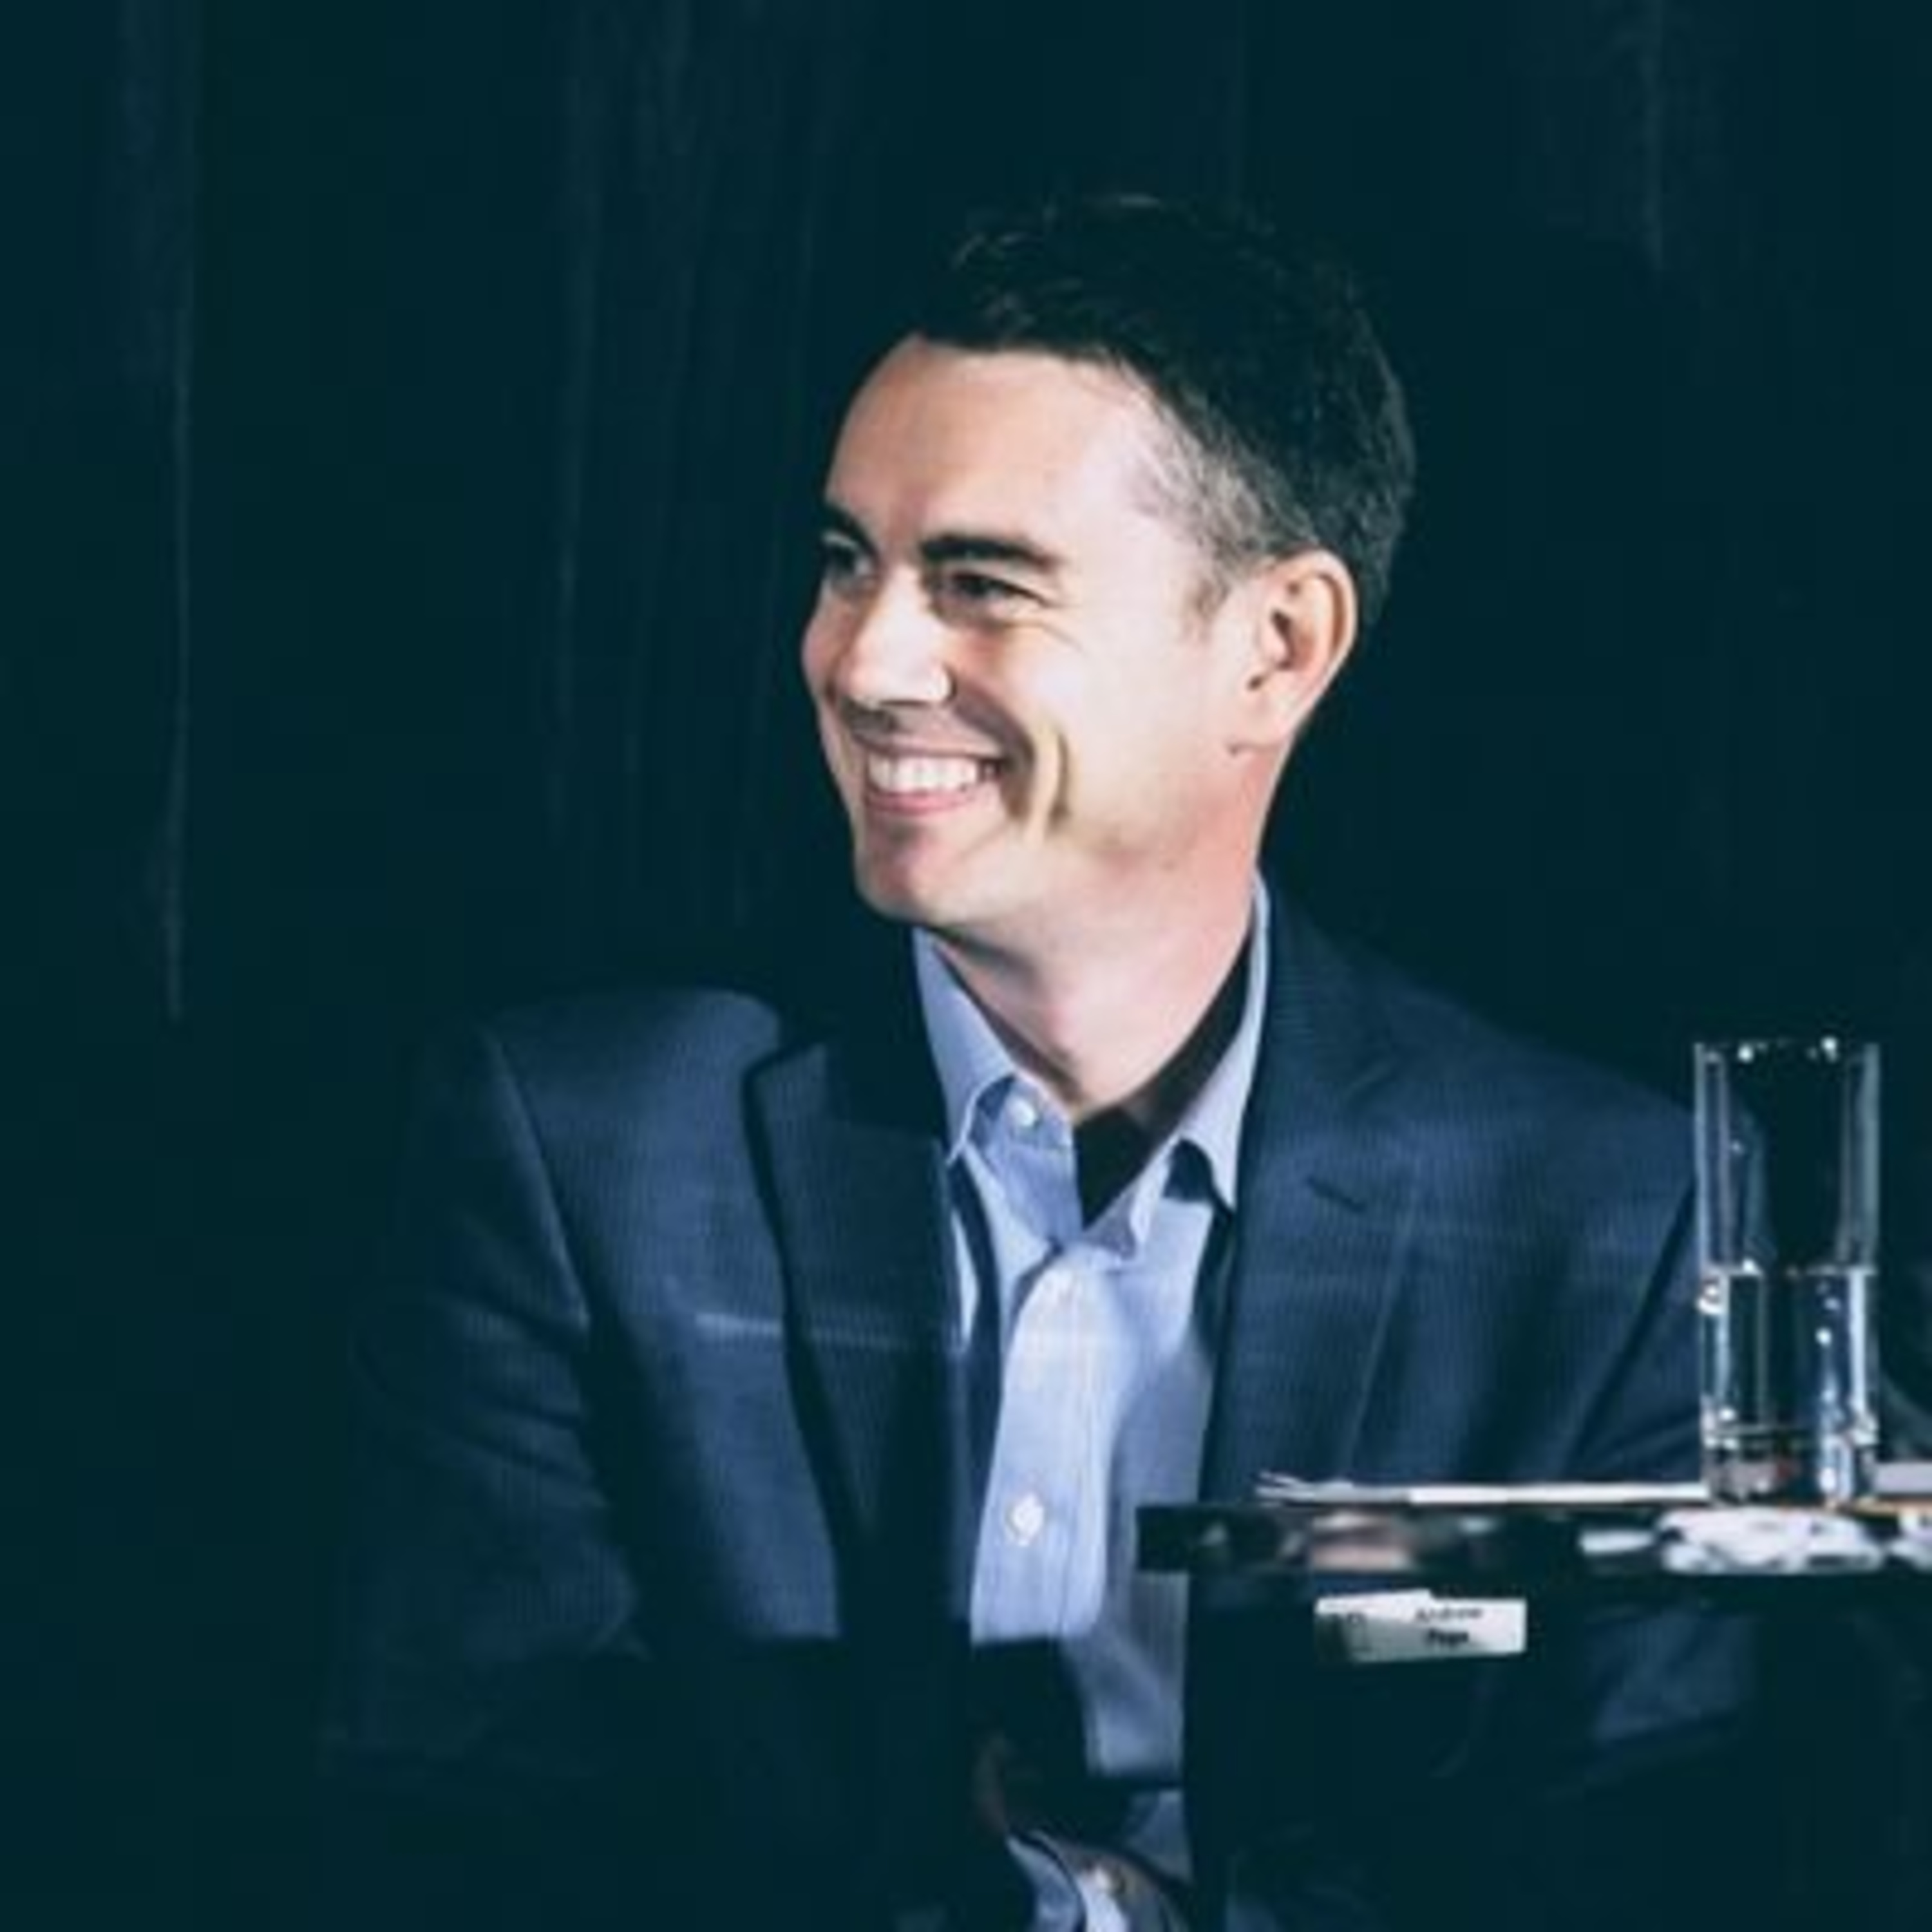 54, Part 2 of my conversation with Andrew Page, discussions about the ASX and some more investing theory!